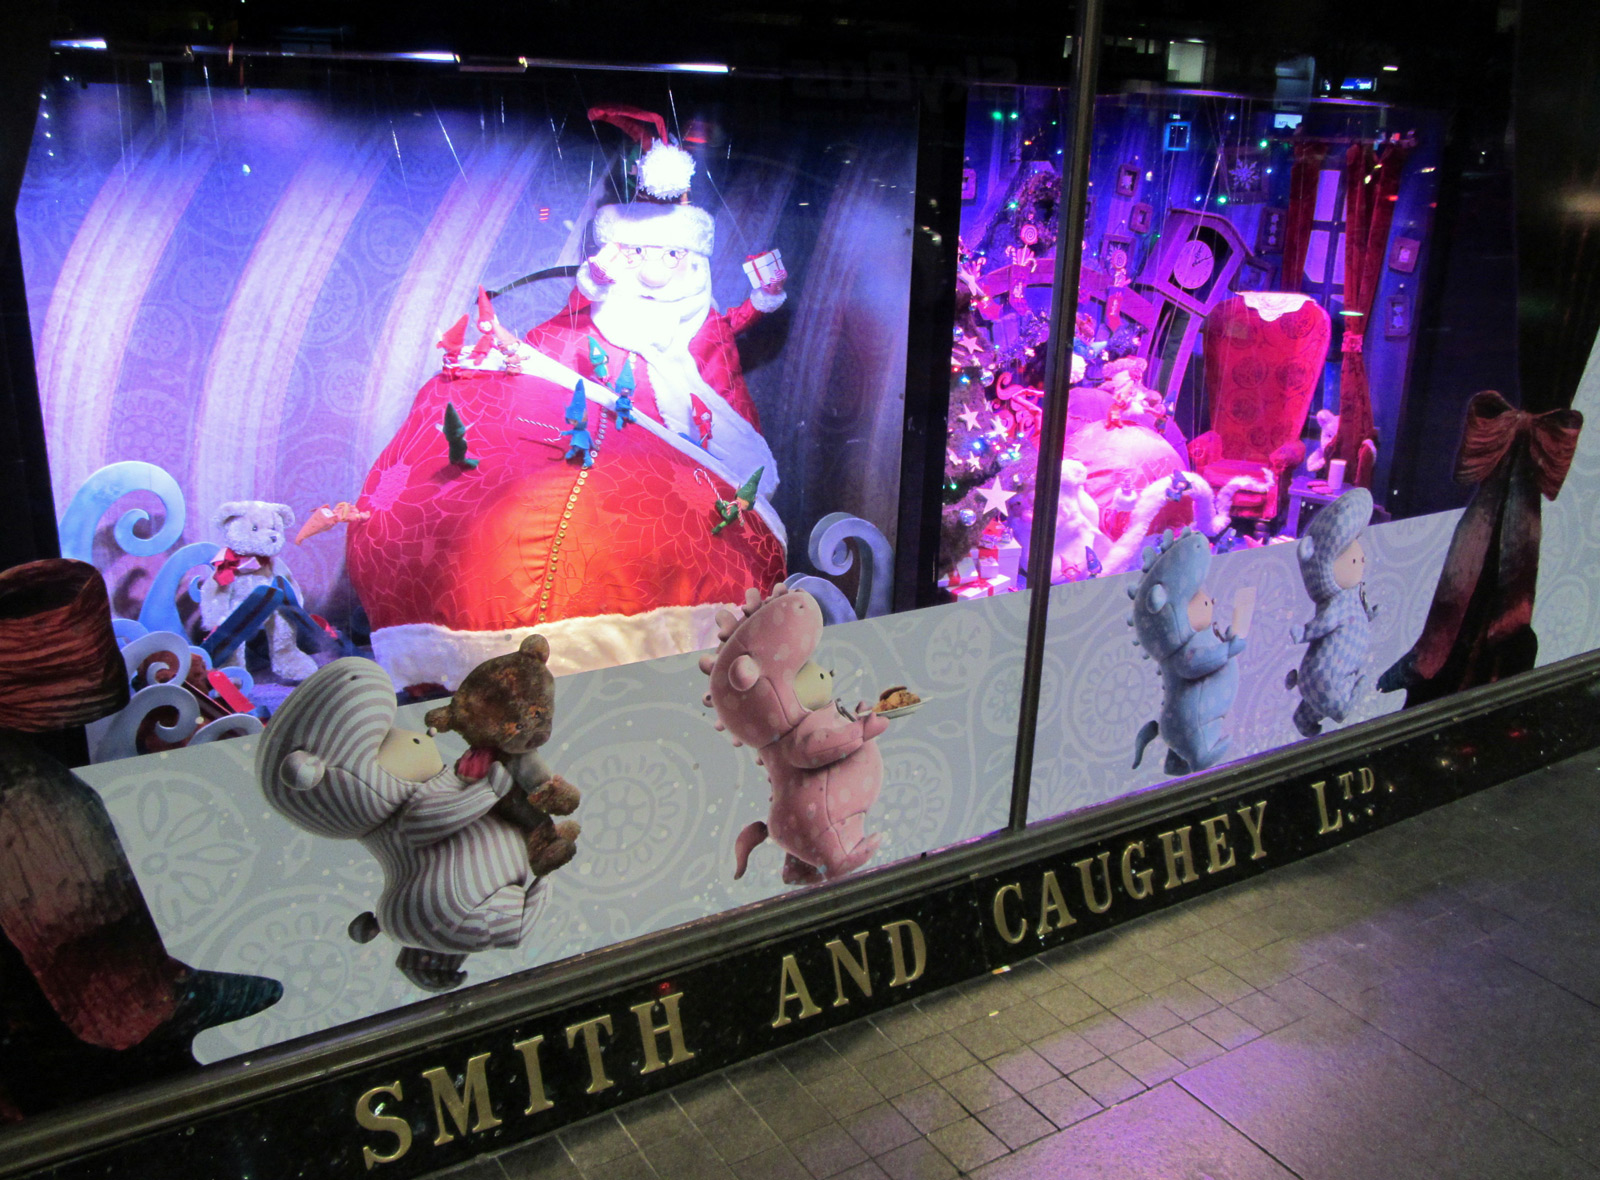 Cute stickers on the window display and Santa in the background to feel better the Christmas, at Smith and Caughey.